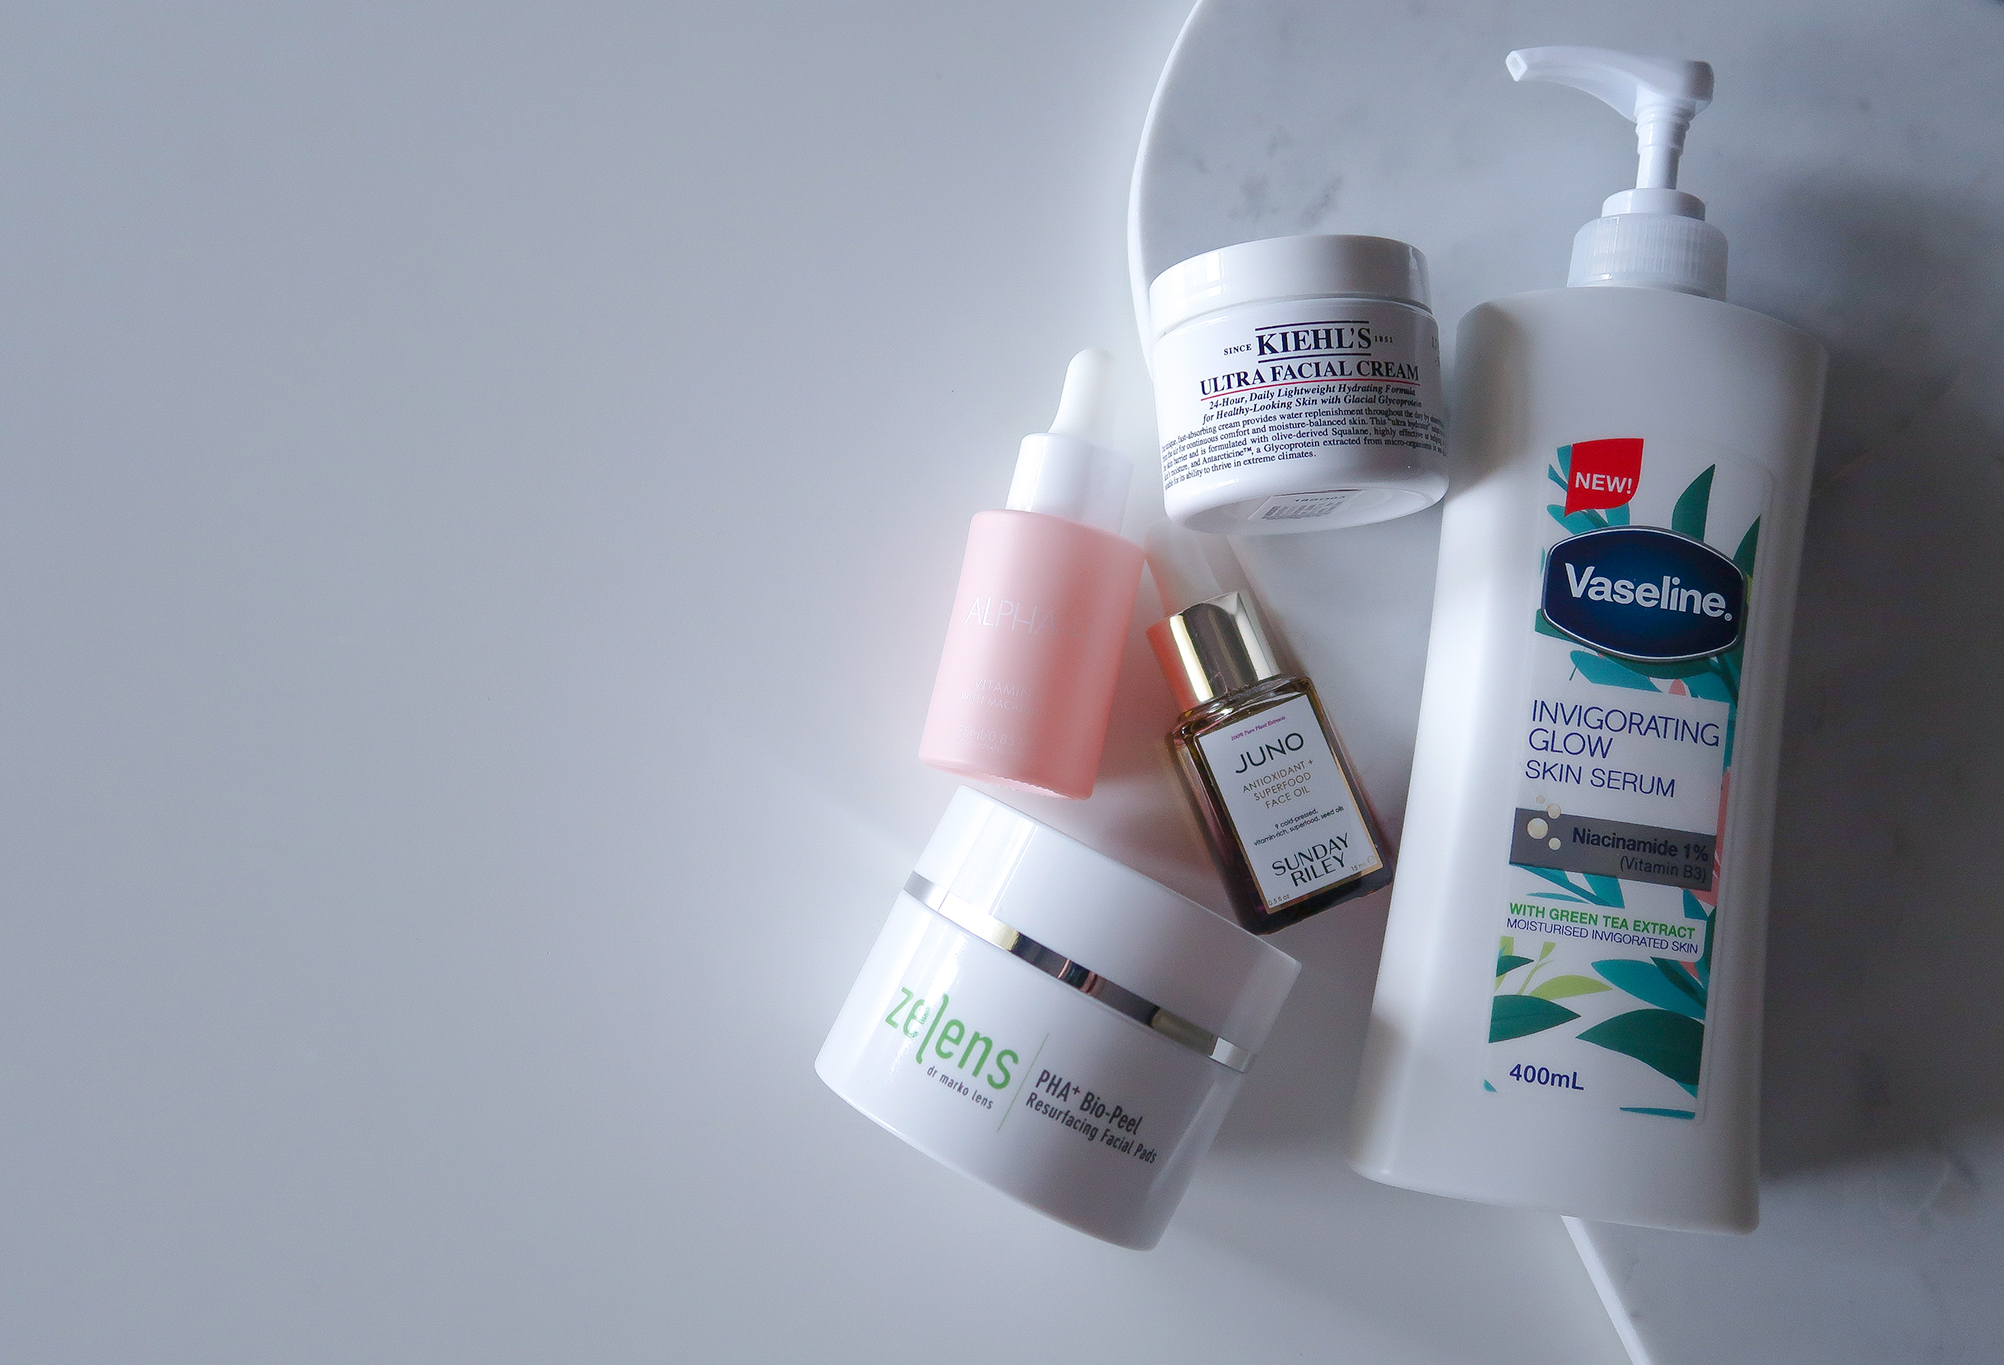 Beauty product favourites